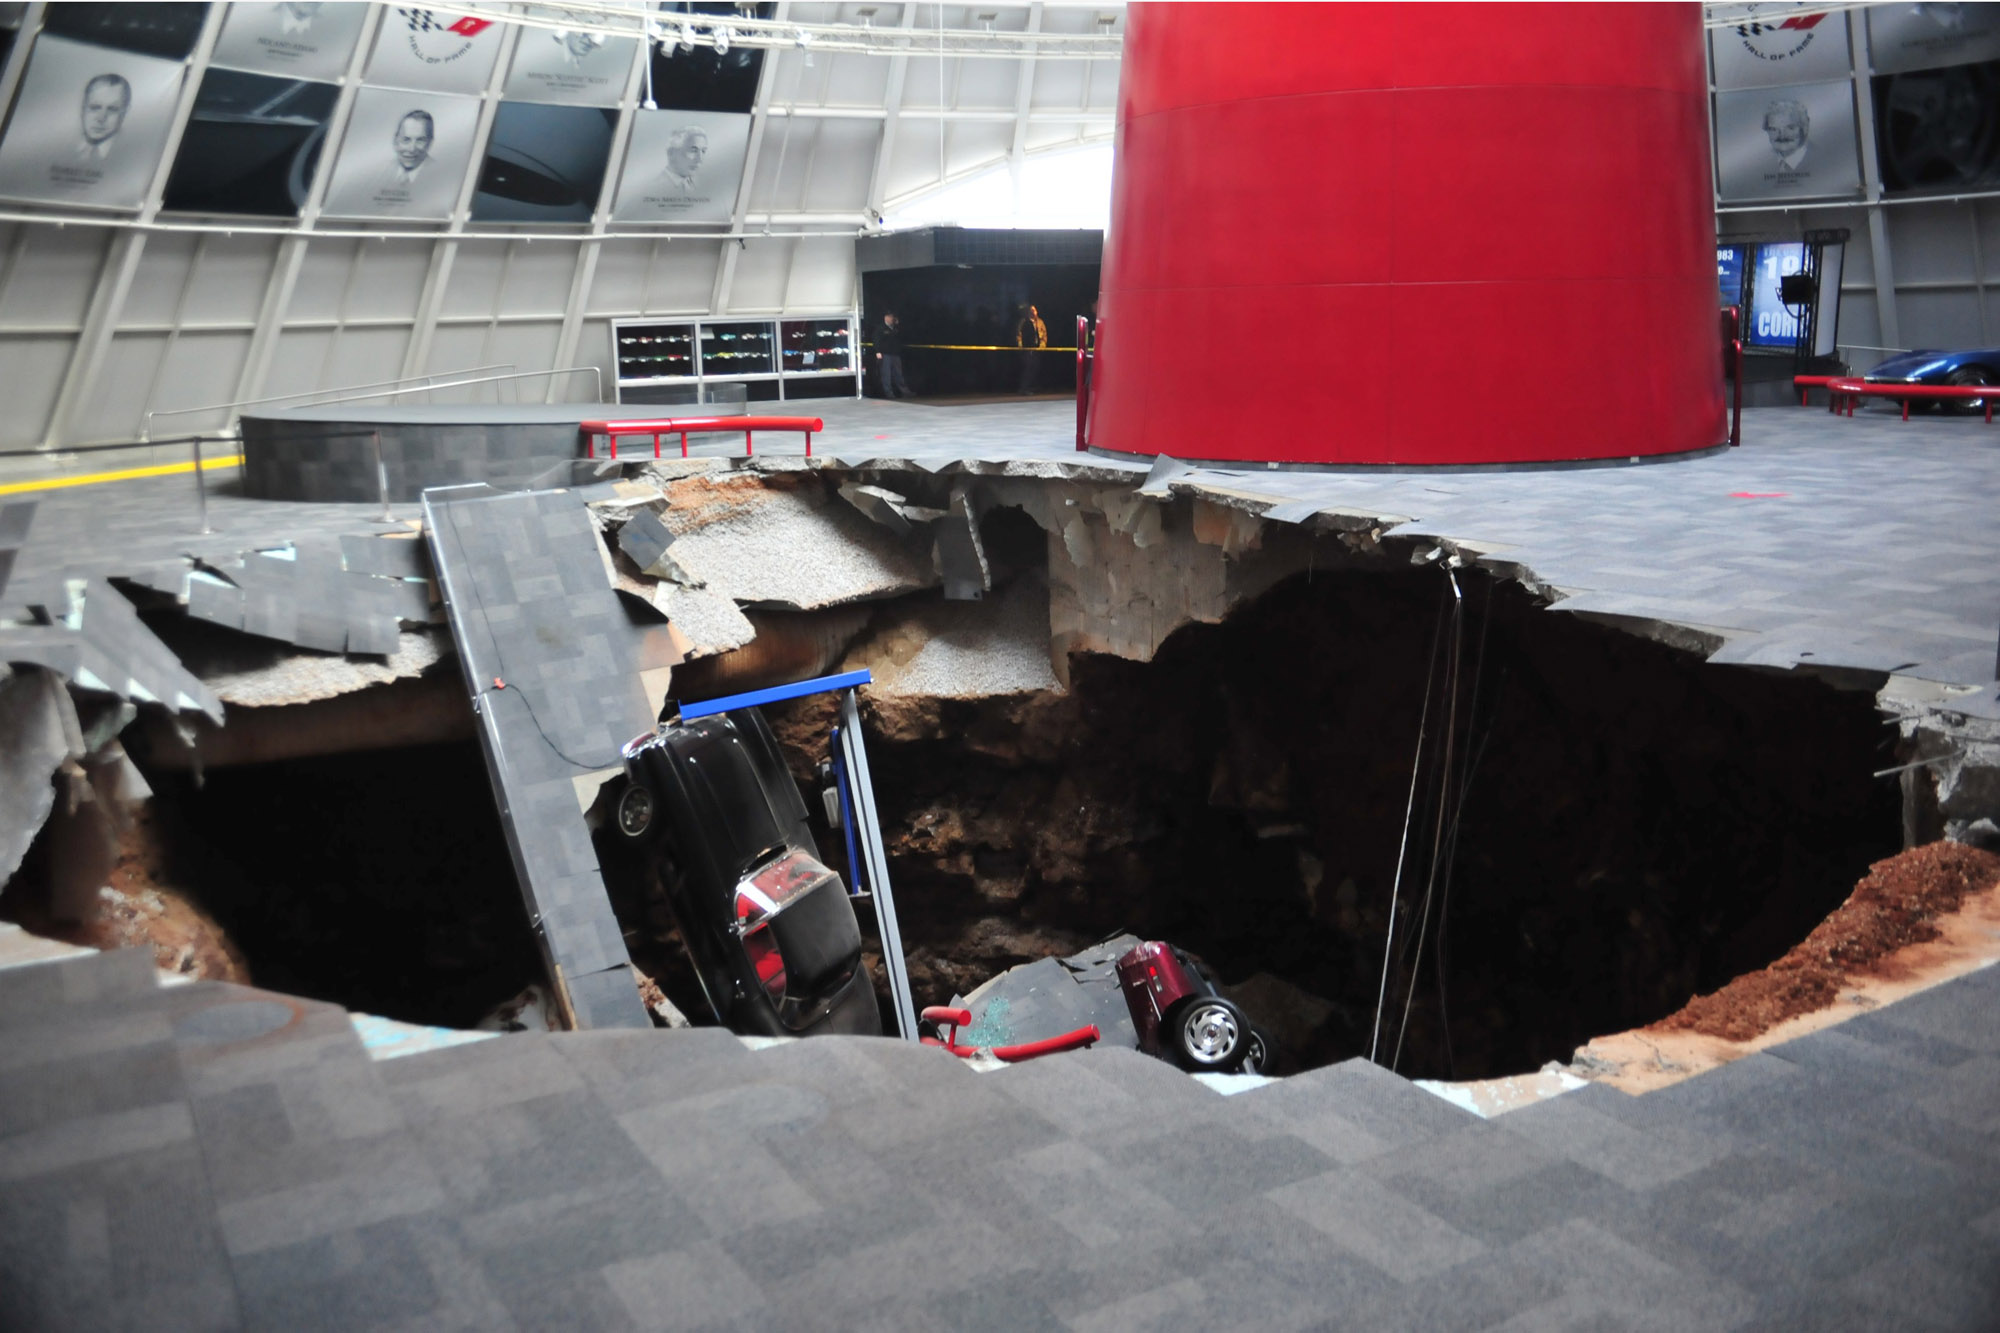 This sinkhole opened up in the middle of the National Corvette Museum, damaging eight cars. Photo: Reuters